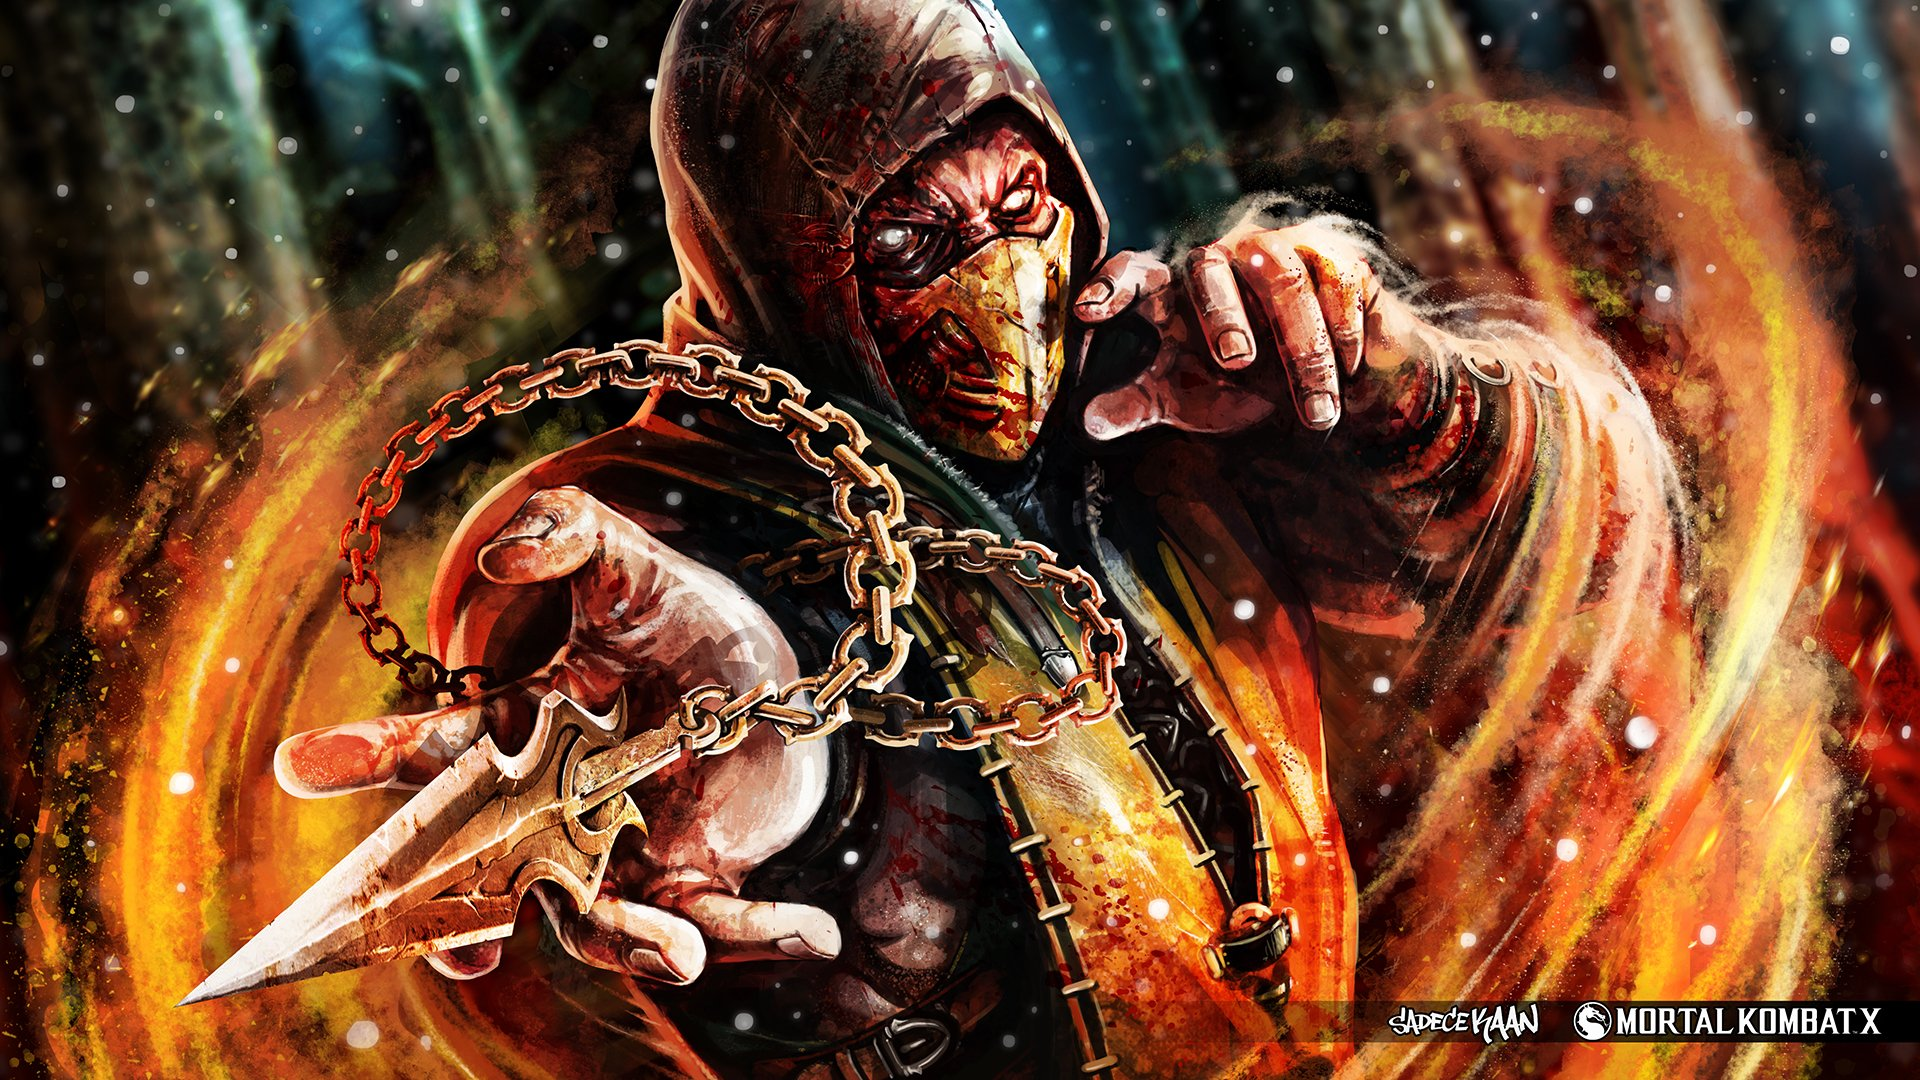 72 Mortal Kombat X Hd Wallpapers Background Images Wallpaper Abyss